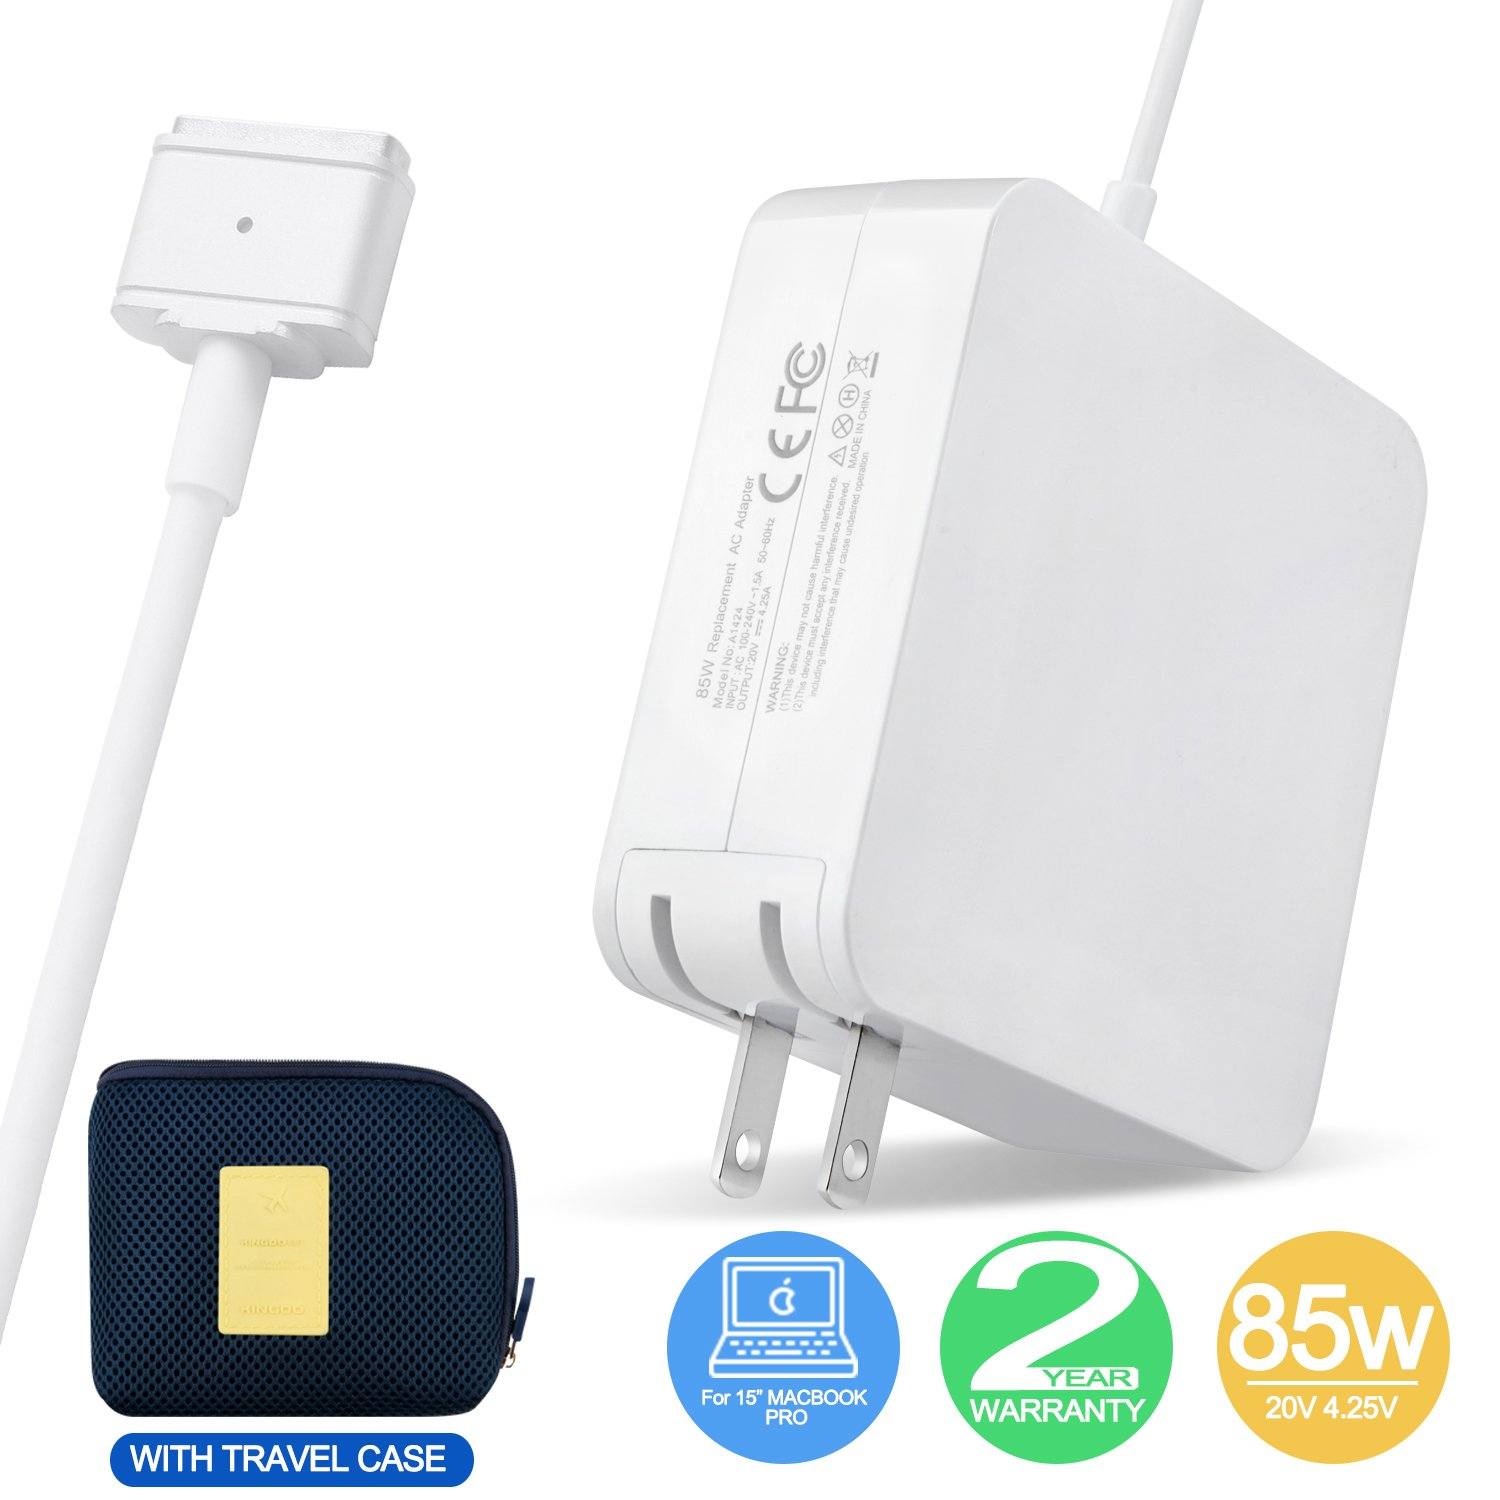 Macbook Pro charger, 85W MagSafe Power Adapter with MagSafe 2 (T-Tip) Style Connector for MacBook Pro 15-inch (Mid 2012 Later Model) Including a Travel Carrying Pouch